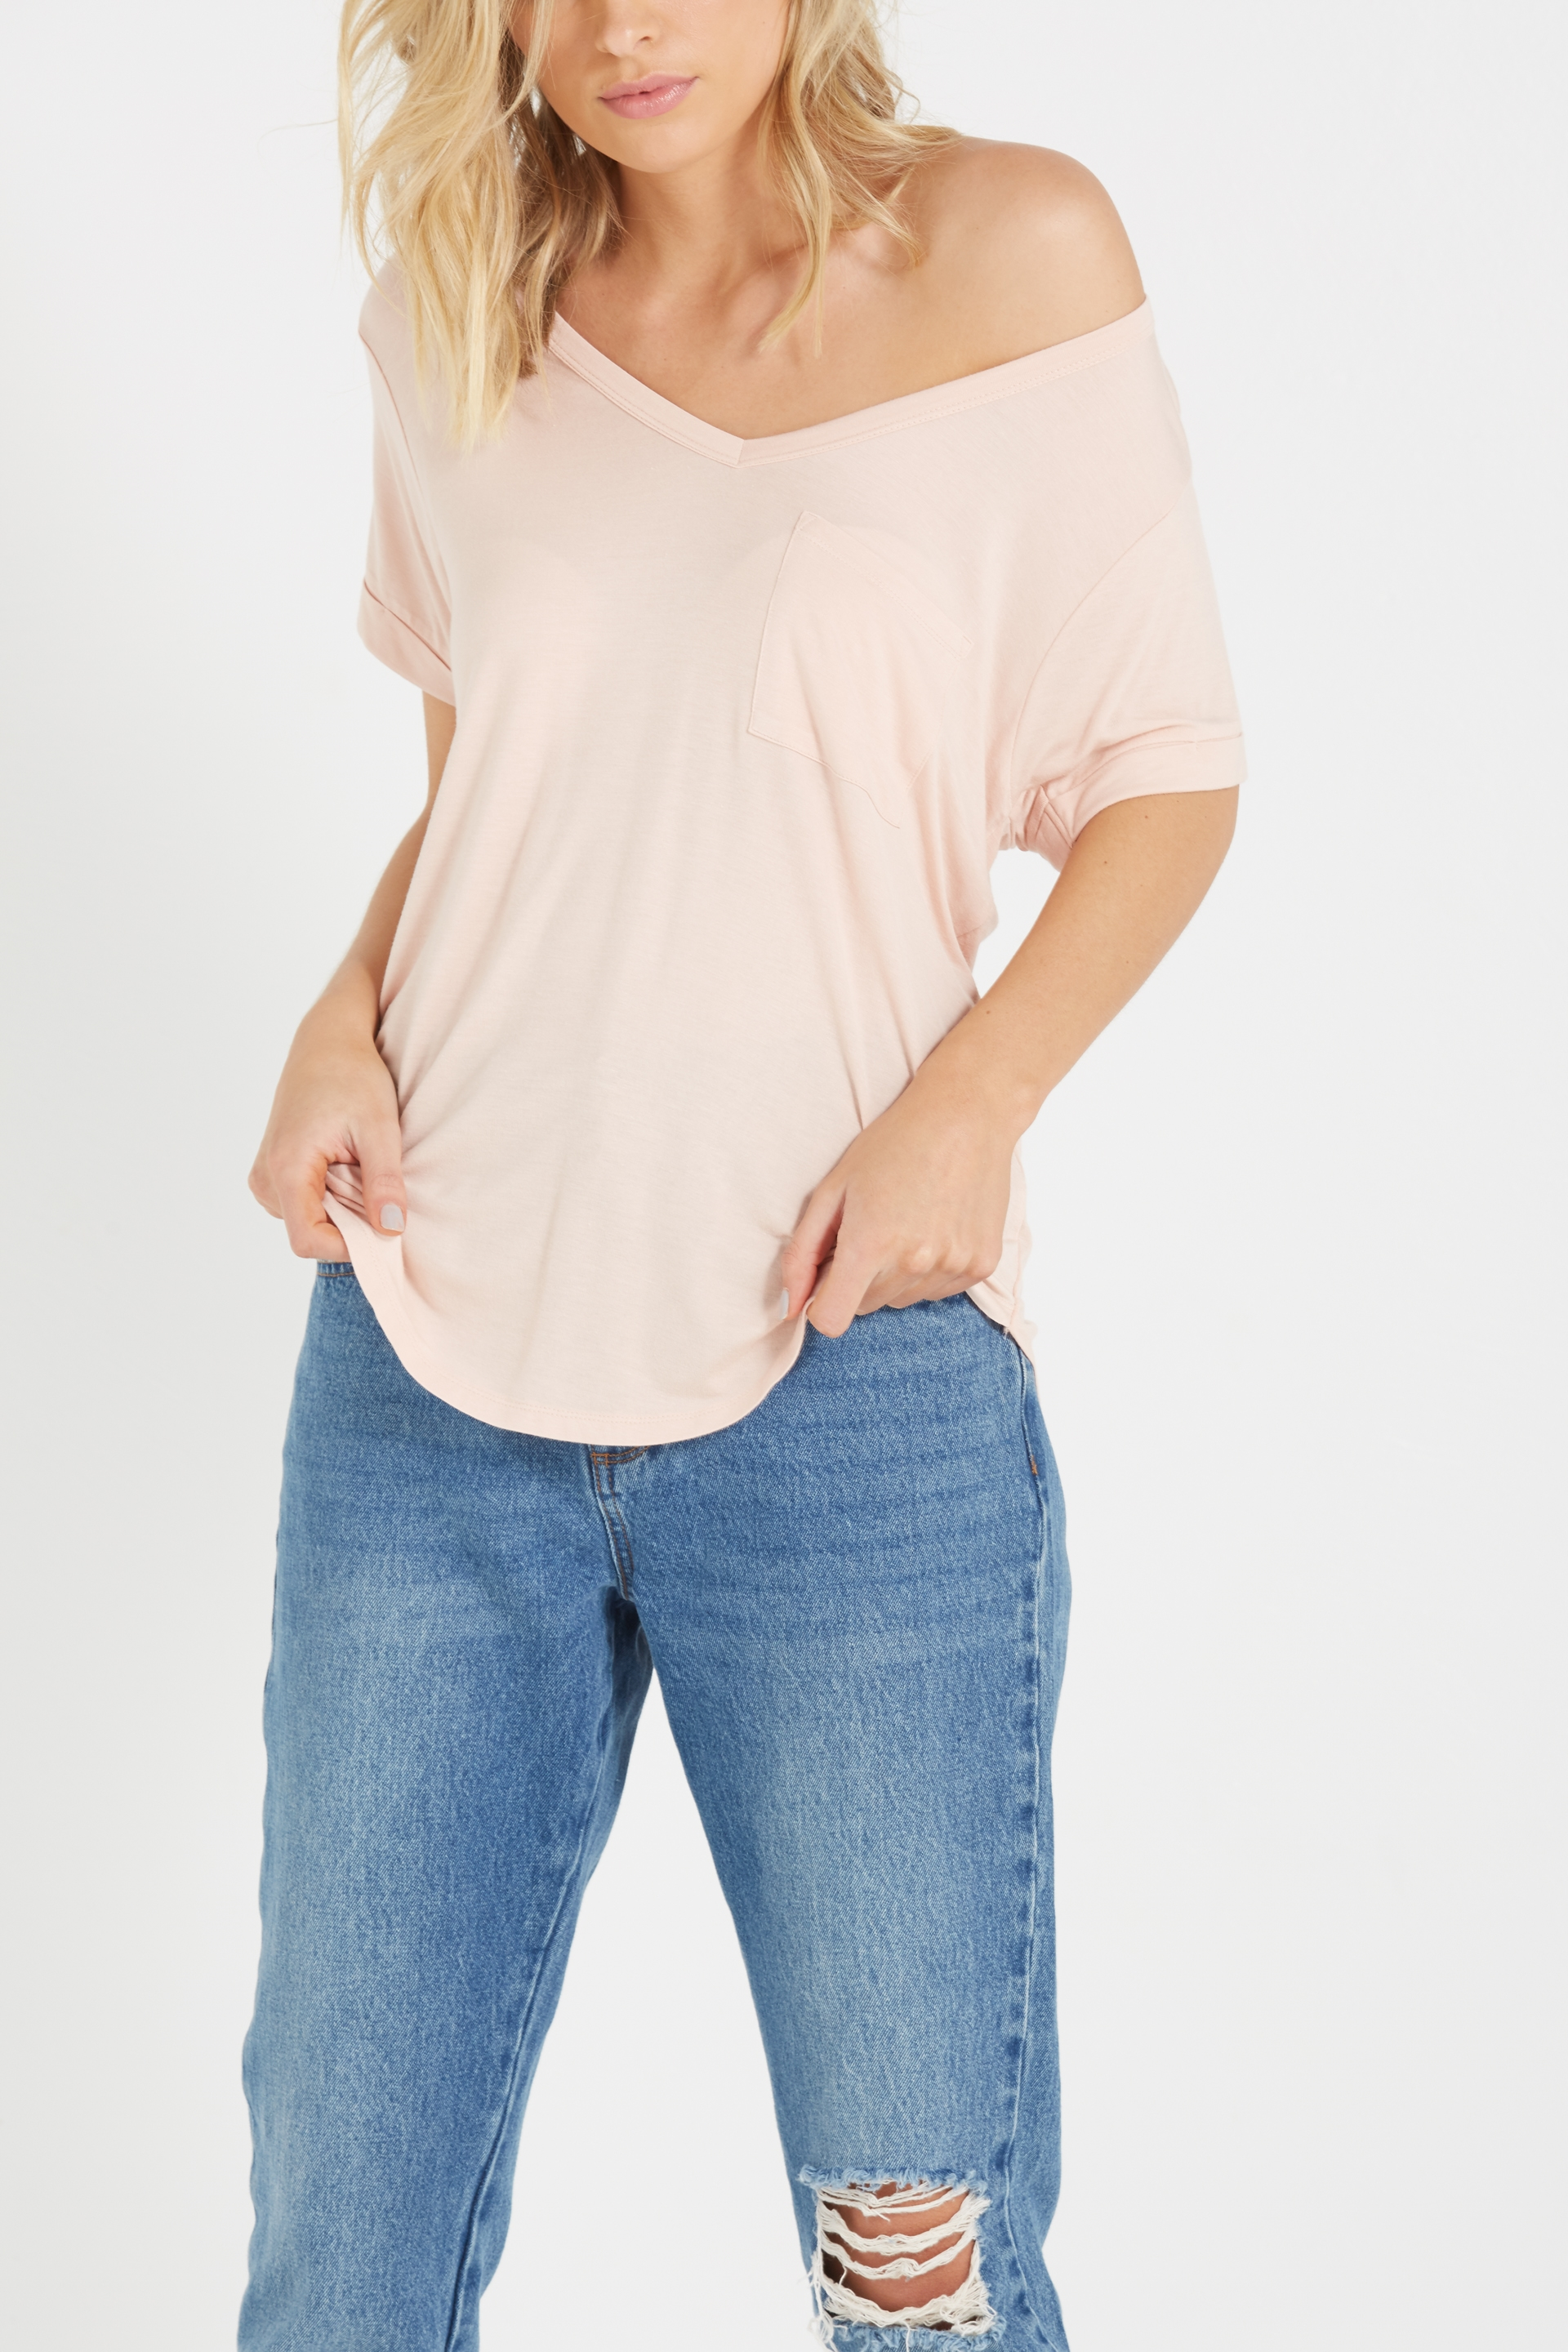 Cotton On Women - Karly Short Sleeve V Neck Top - Nude pink 9351785371092